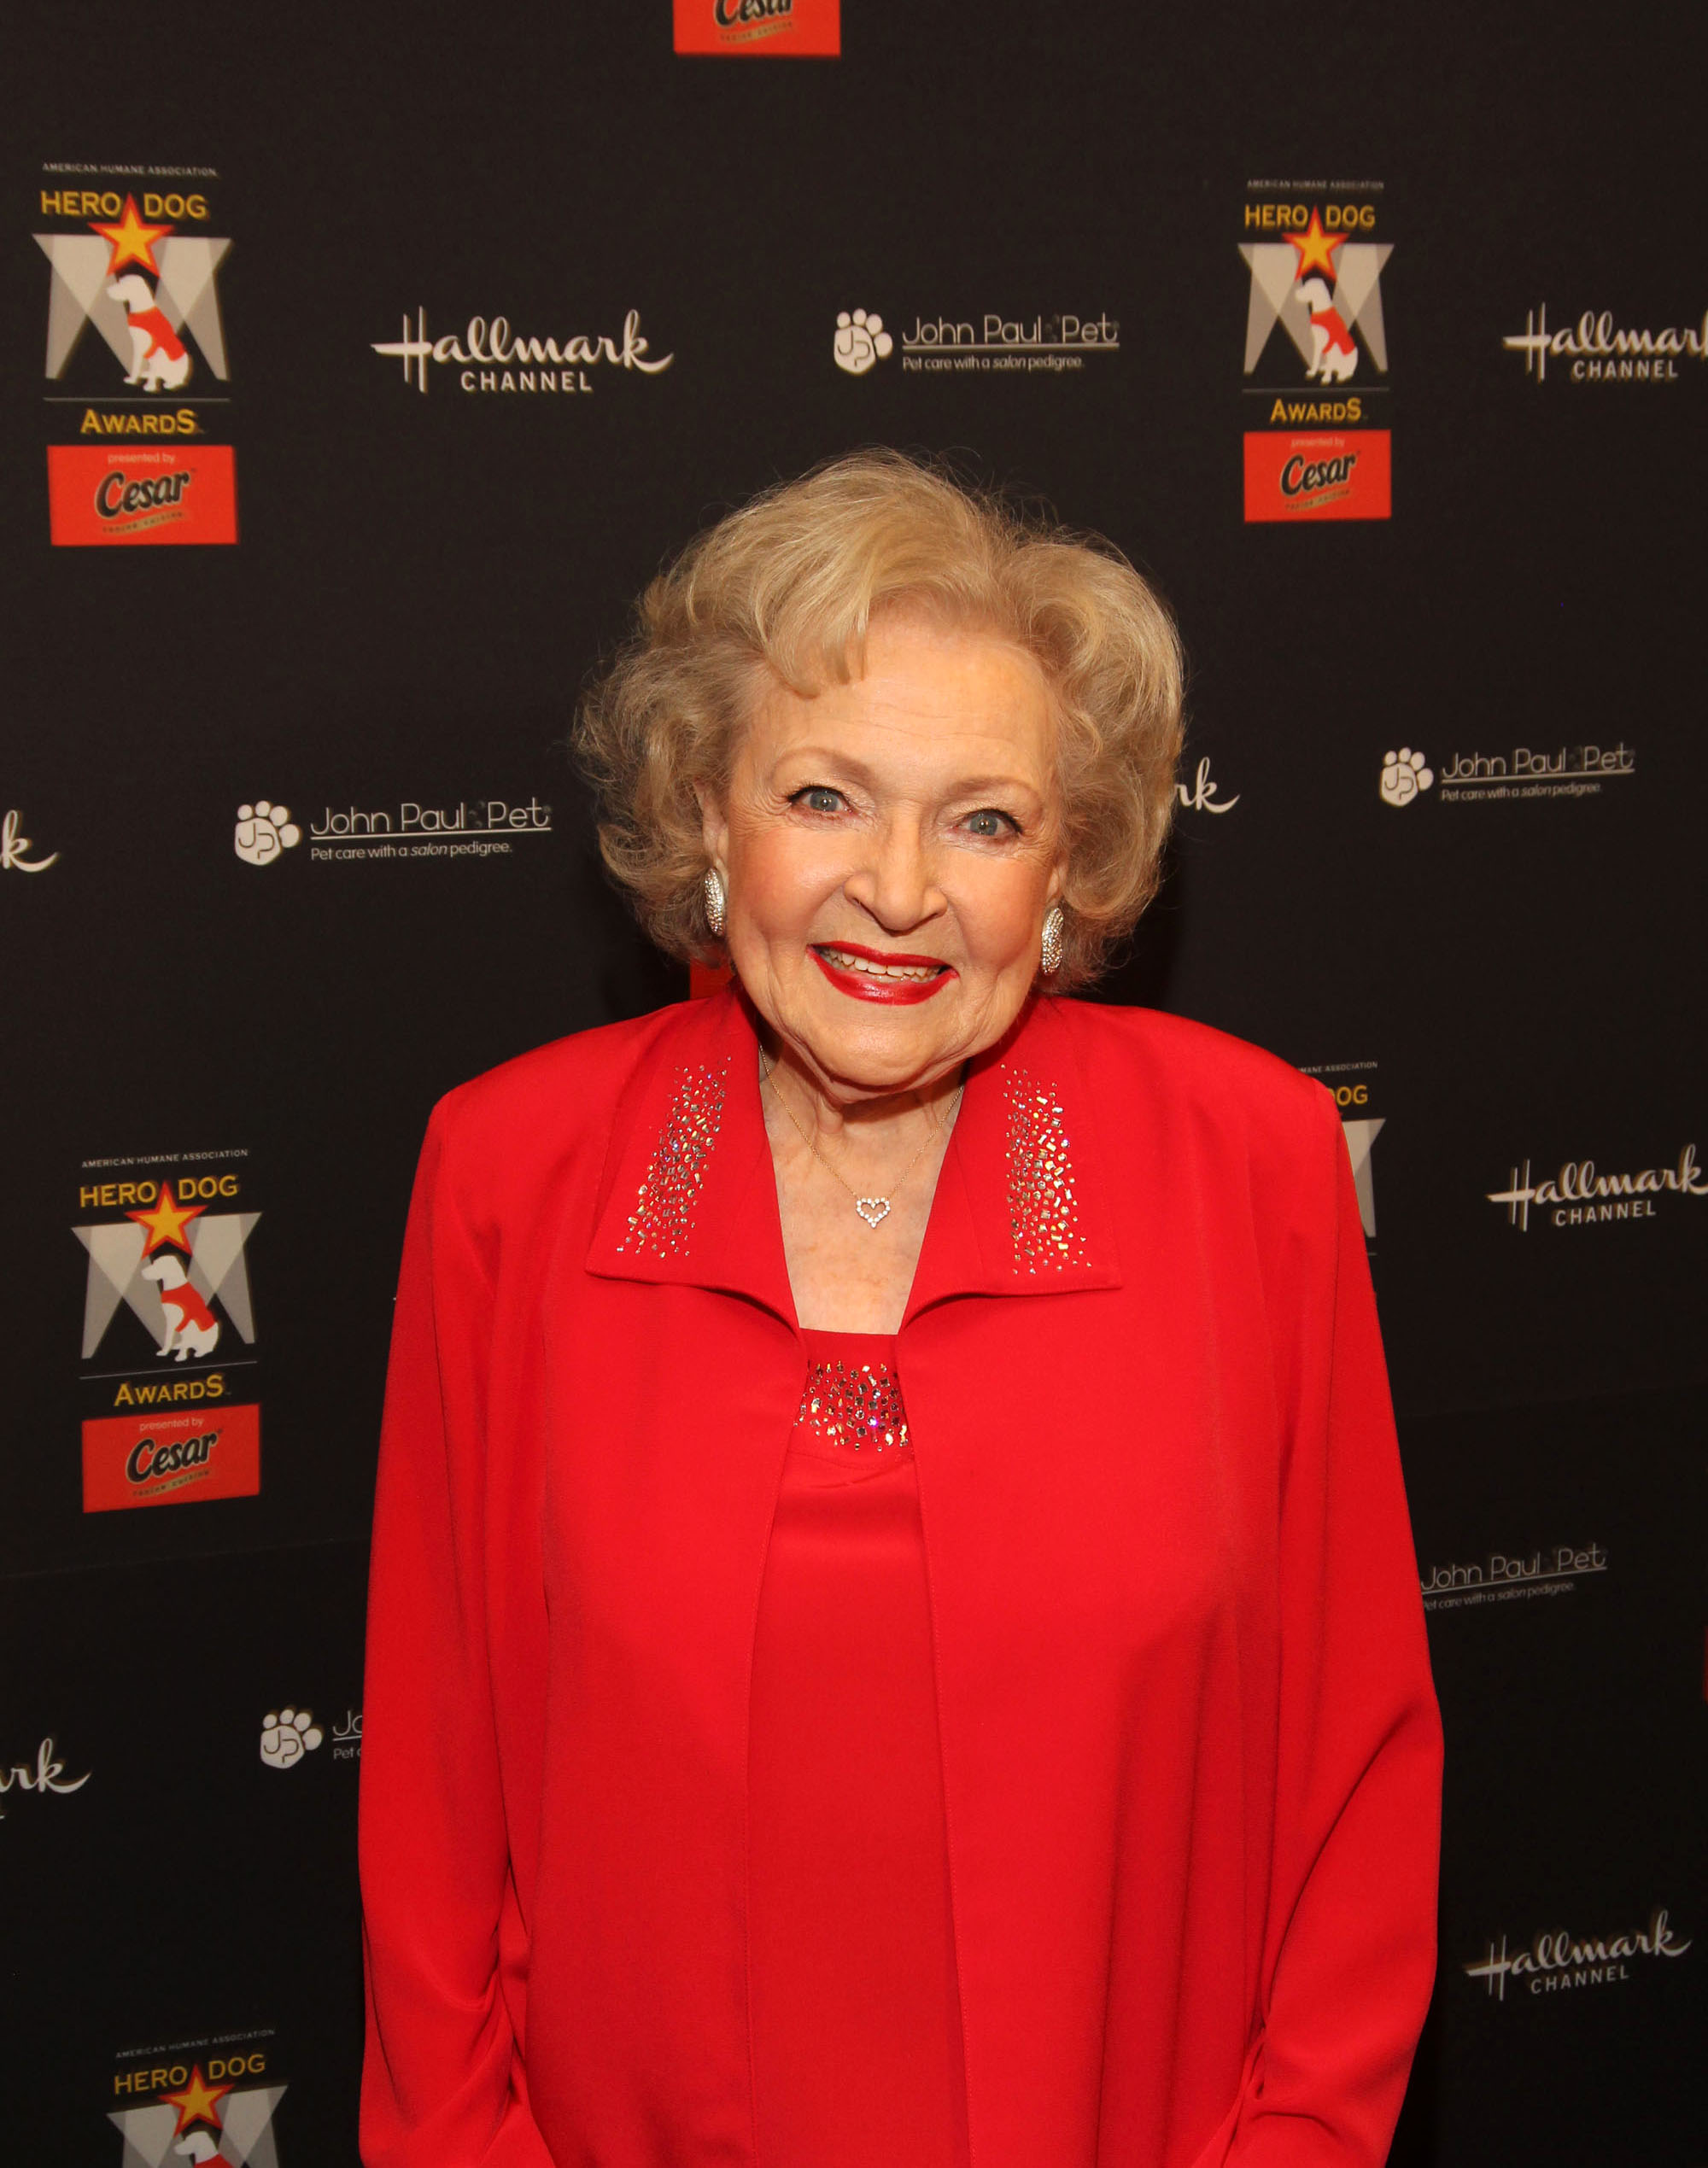 Hallmark Channel Marathon for Betty White´s 90th Birthday